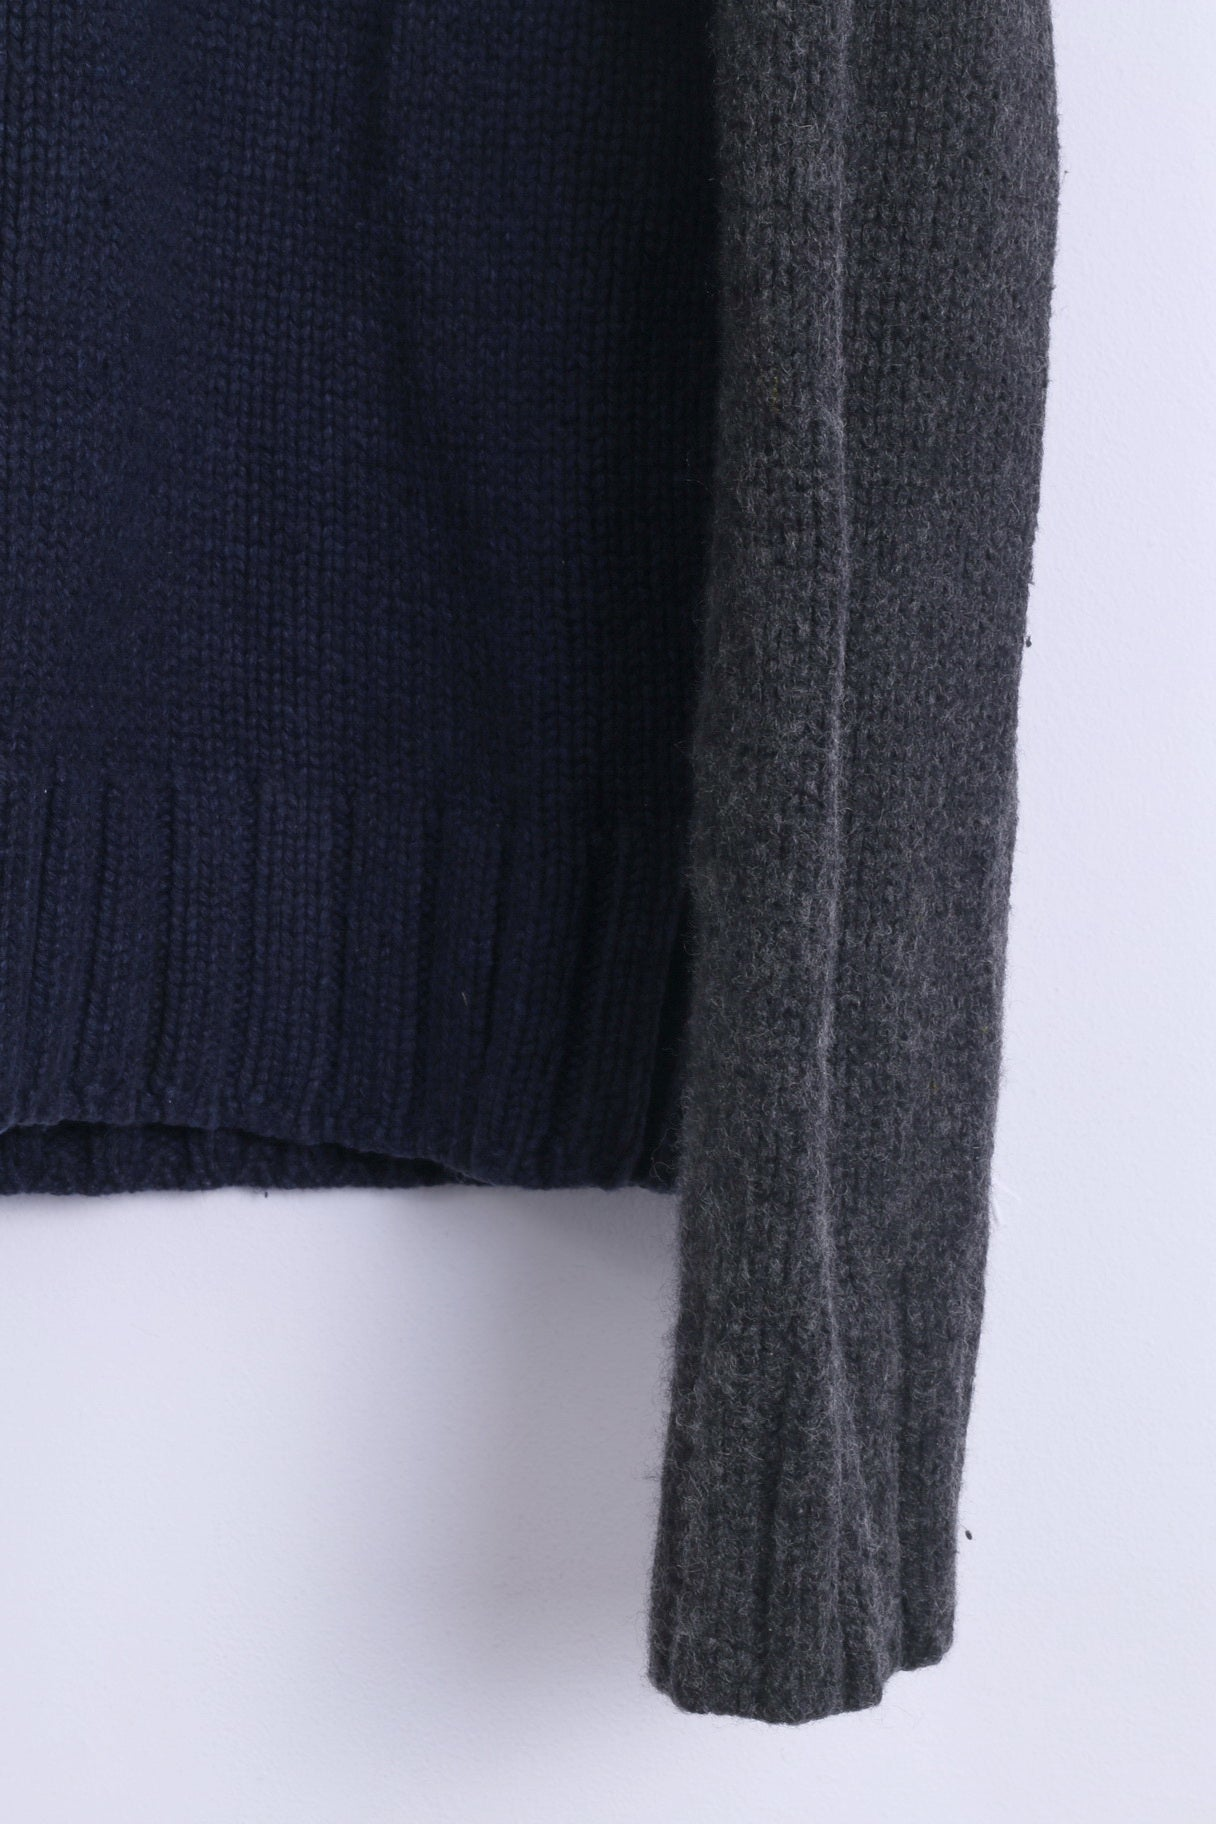 fa3f8ae4 ... 92; Abercrombie & Fitch Mens XL Sweater Navy Zip Up Muscle Lambswool AF  ...